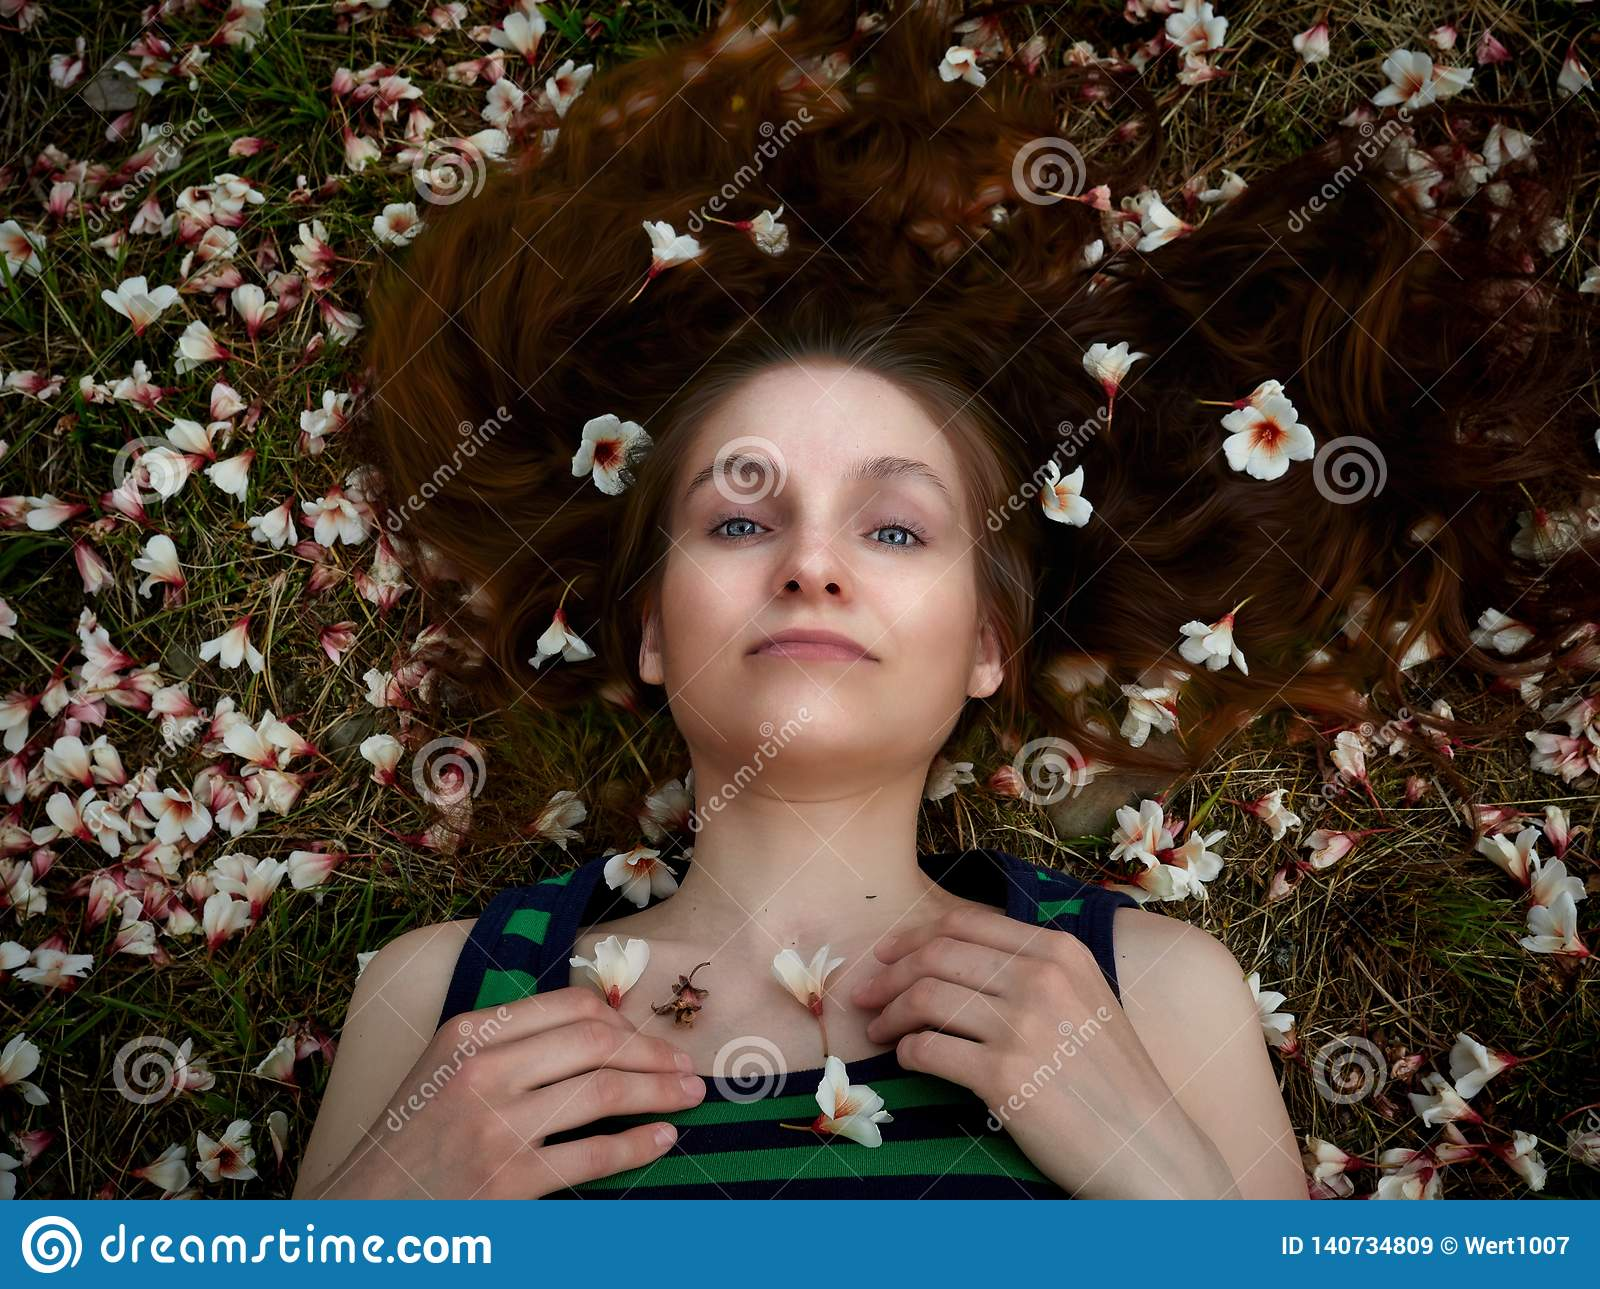 The girl lies on the grass, covered with white flowers